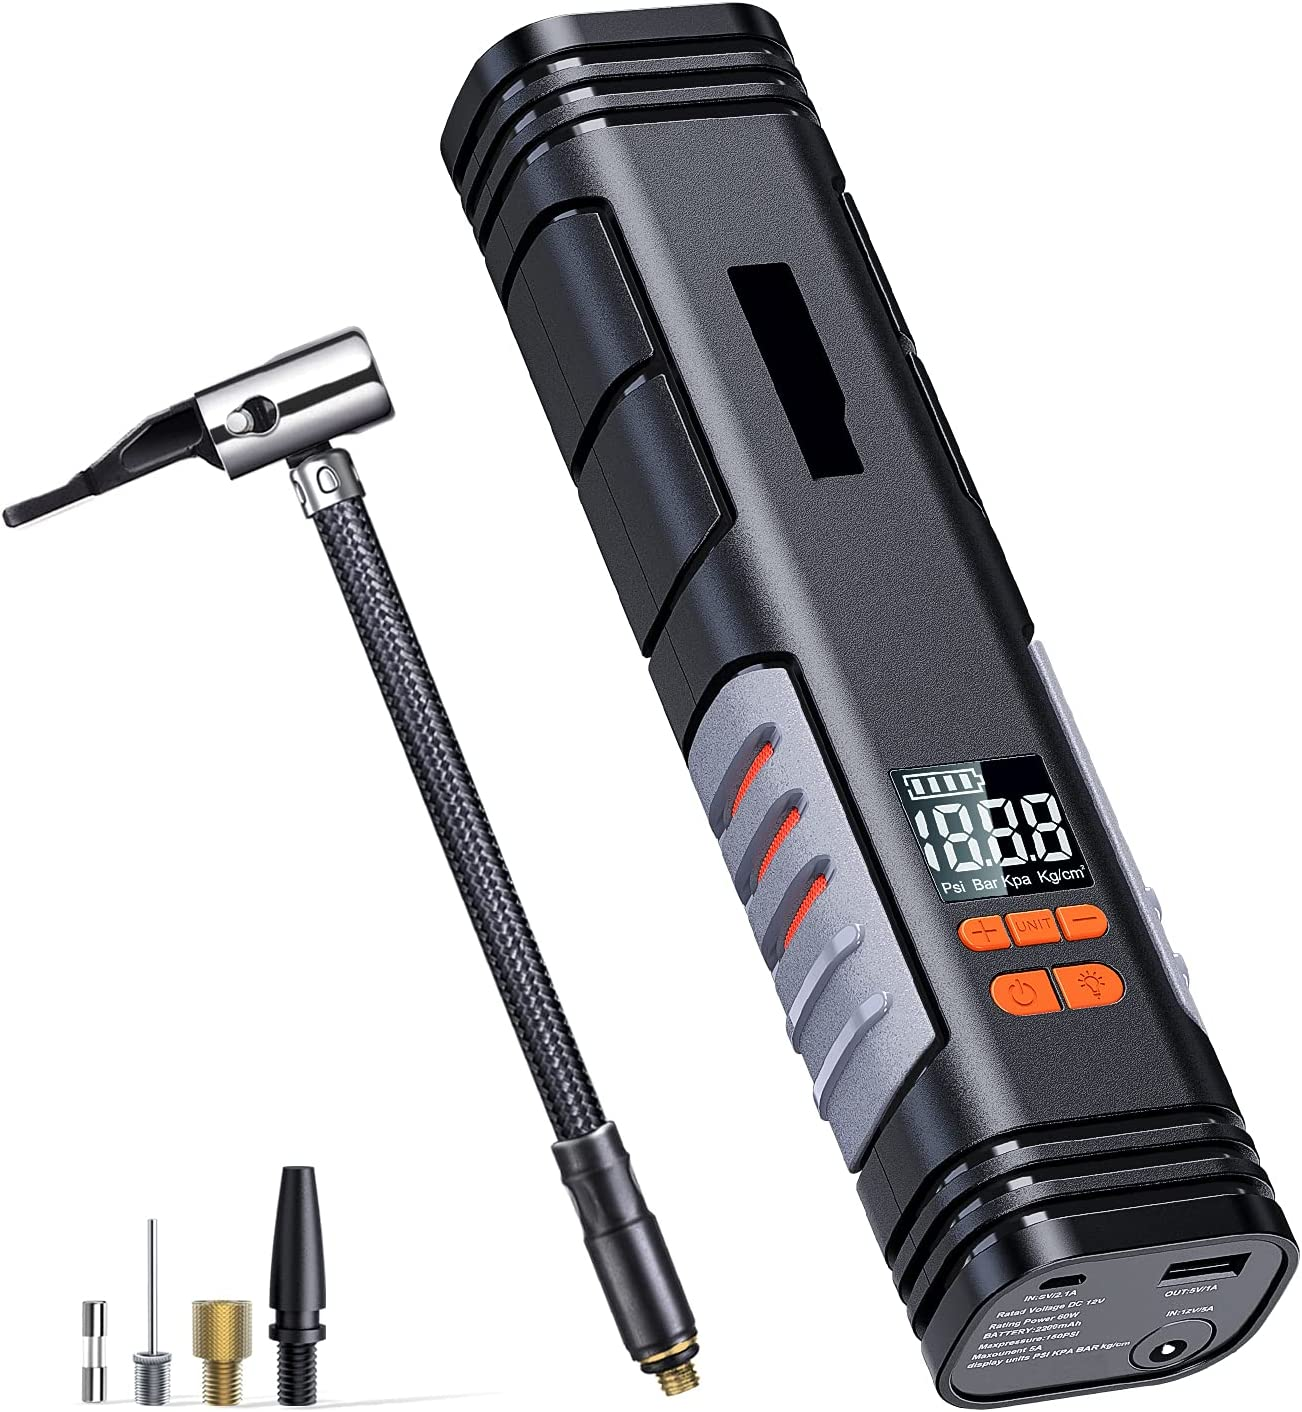 Challenge low-pricing the lowest price Tire Inflator X1 Rechargeable Handheld - Cordless